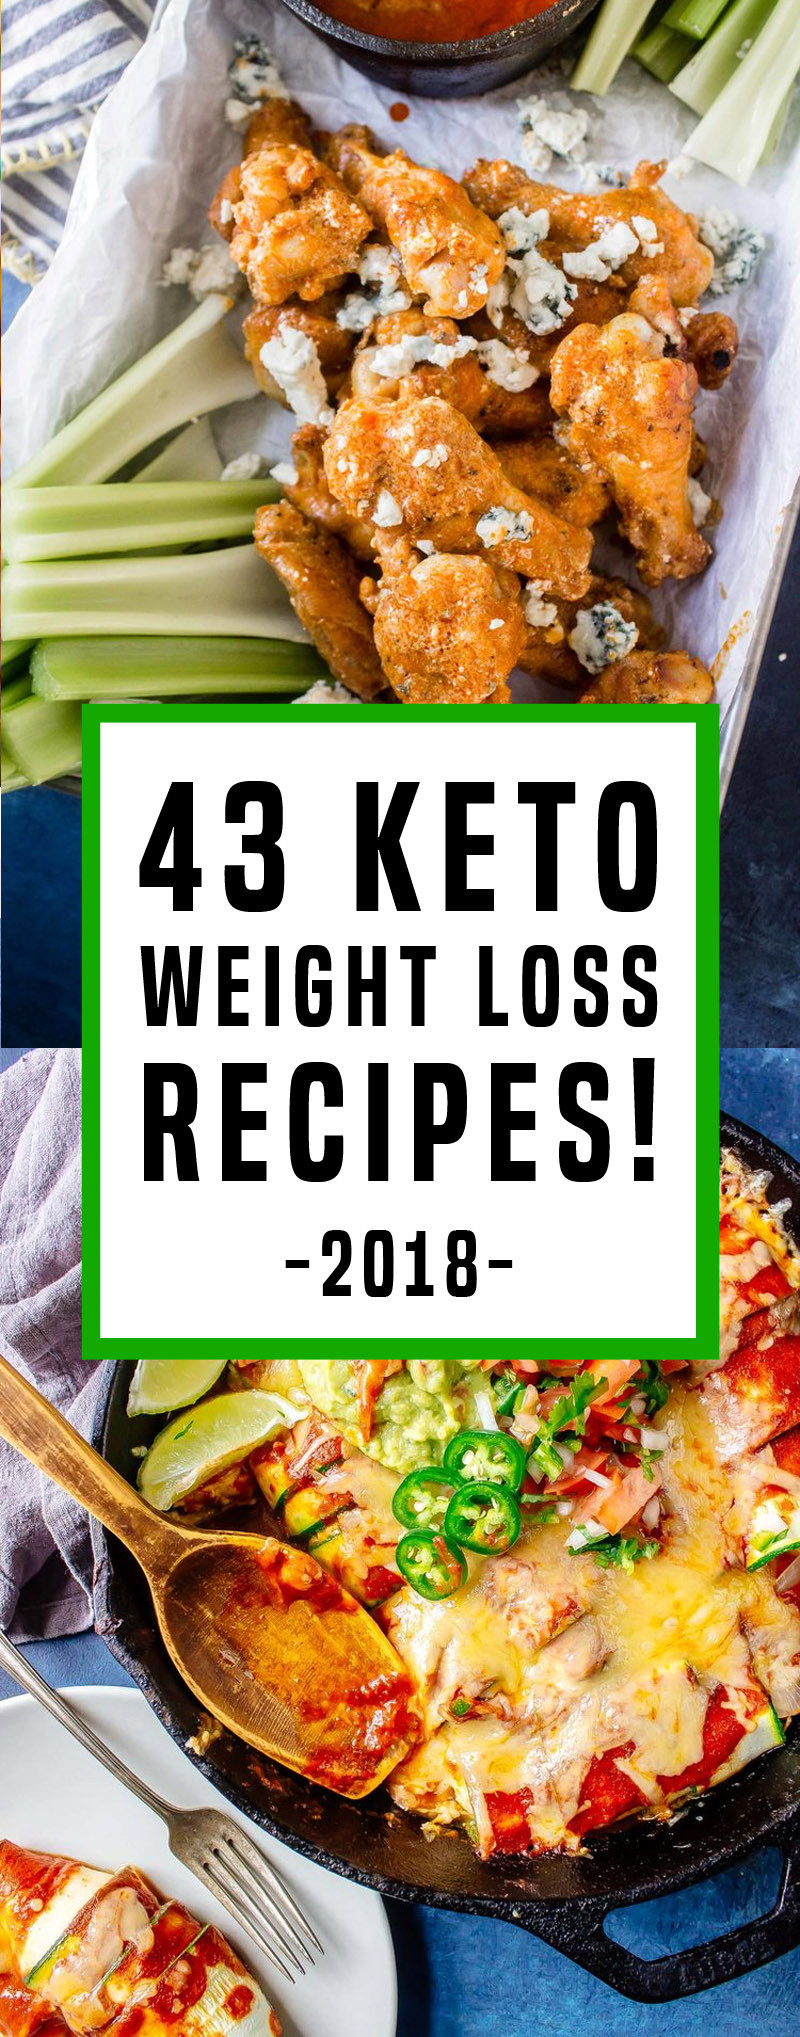 Weight Loss Foods Recipes  43 Keto Diet Recipes That Will Help You Burn Fat Fast In